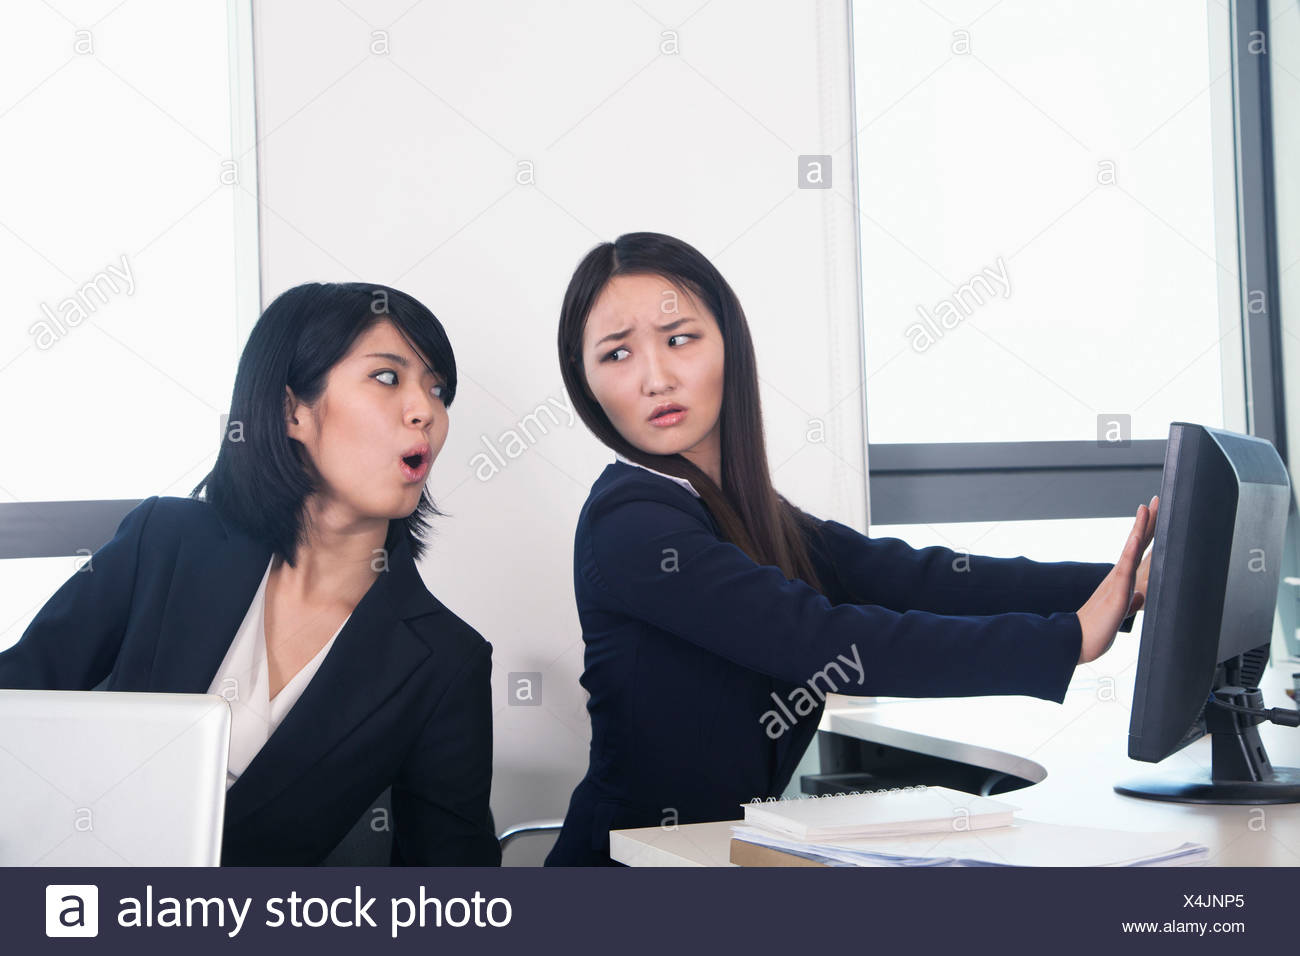 Officer worker hiding her computer from coworker - Stock Image